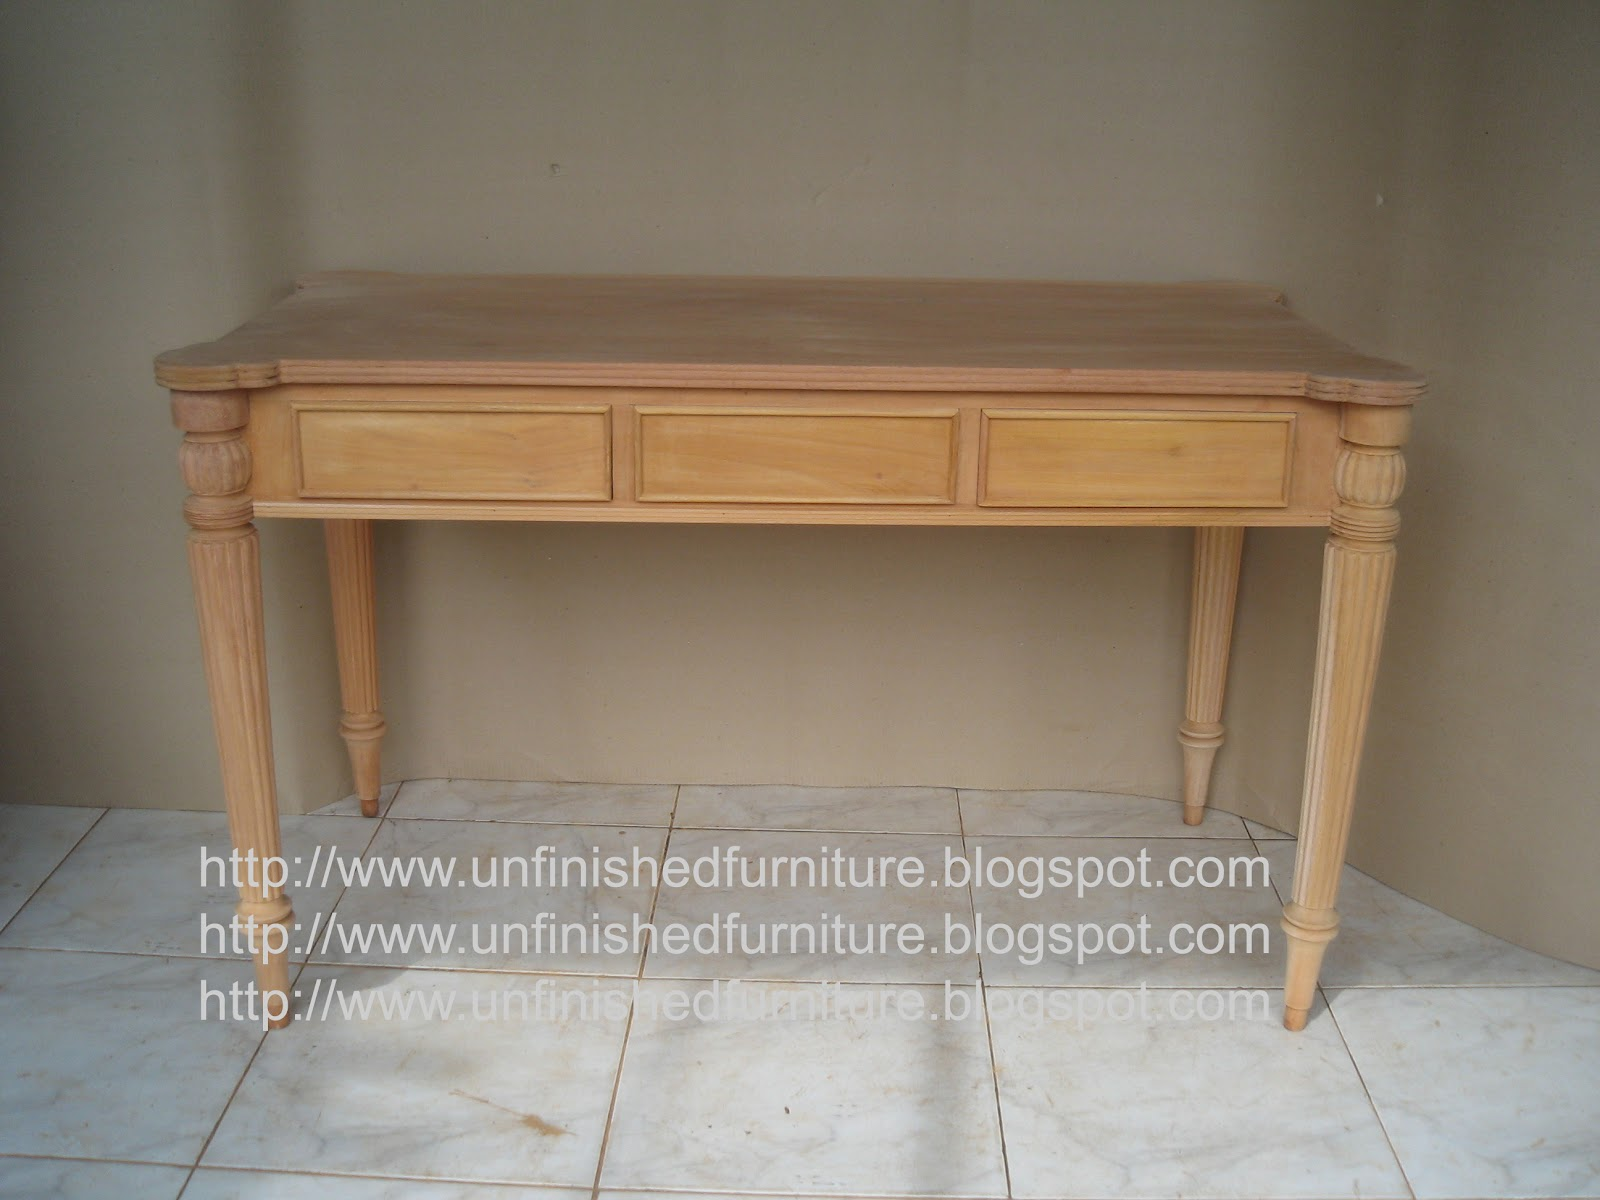 1600x1200 Unfinished Solid Wood Furniture Furniture Design Ideas img   8E683D Reliable Unfinished Desk Furniture 16001200. Reliable Unfinished Desk Furniture   htpcworks com   Awe Inspiring